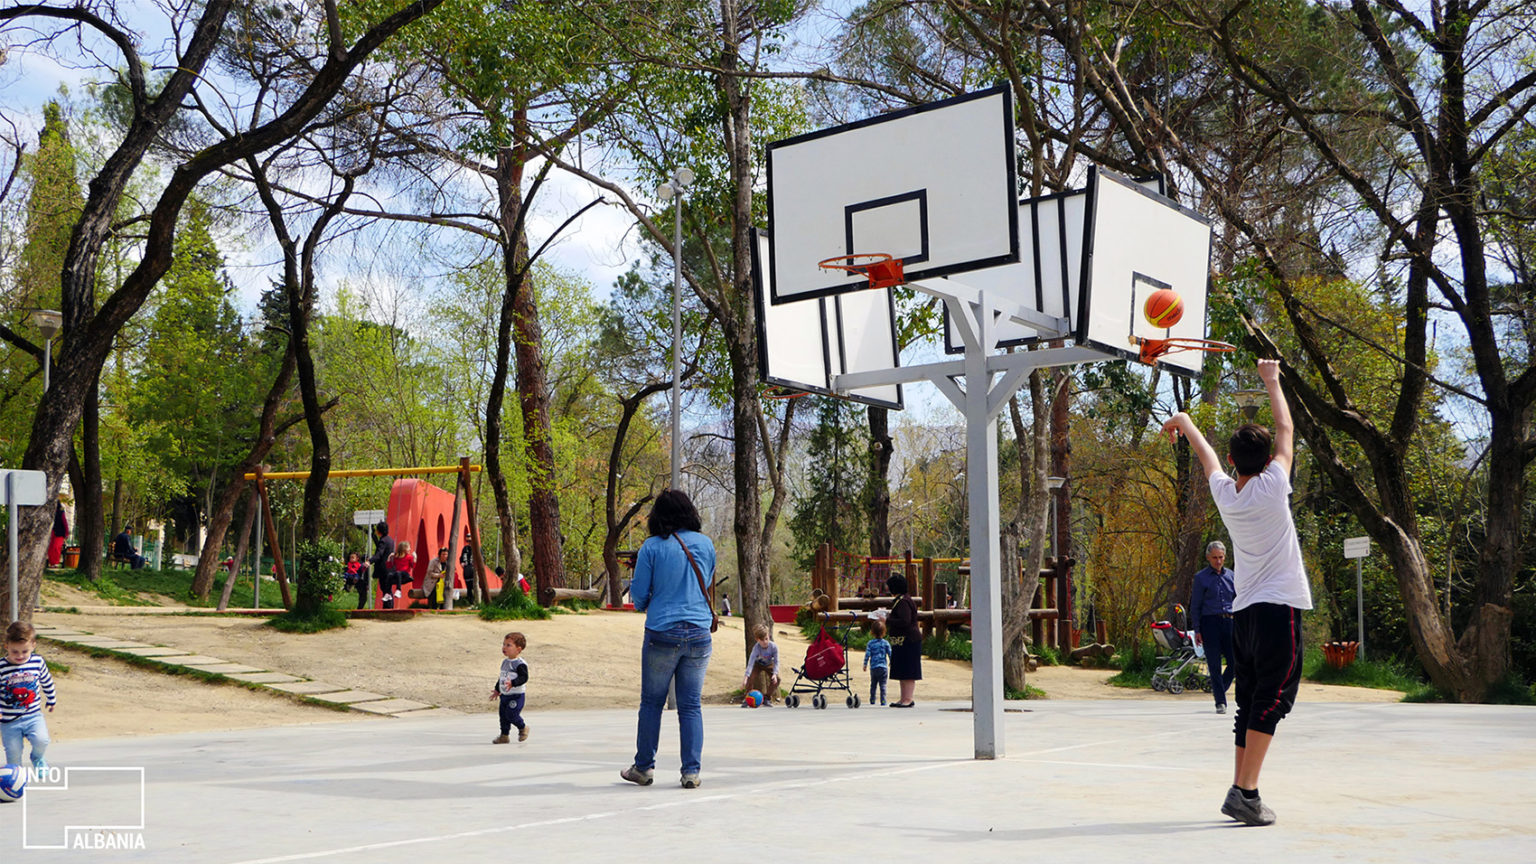 Playground at the Grand Park of Tirana, photo by IntoAlbania